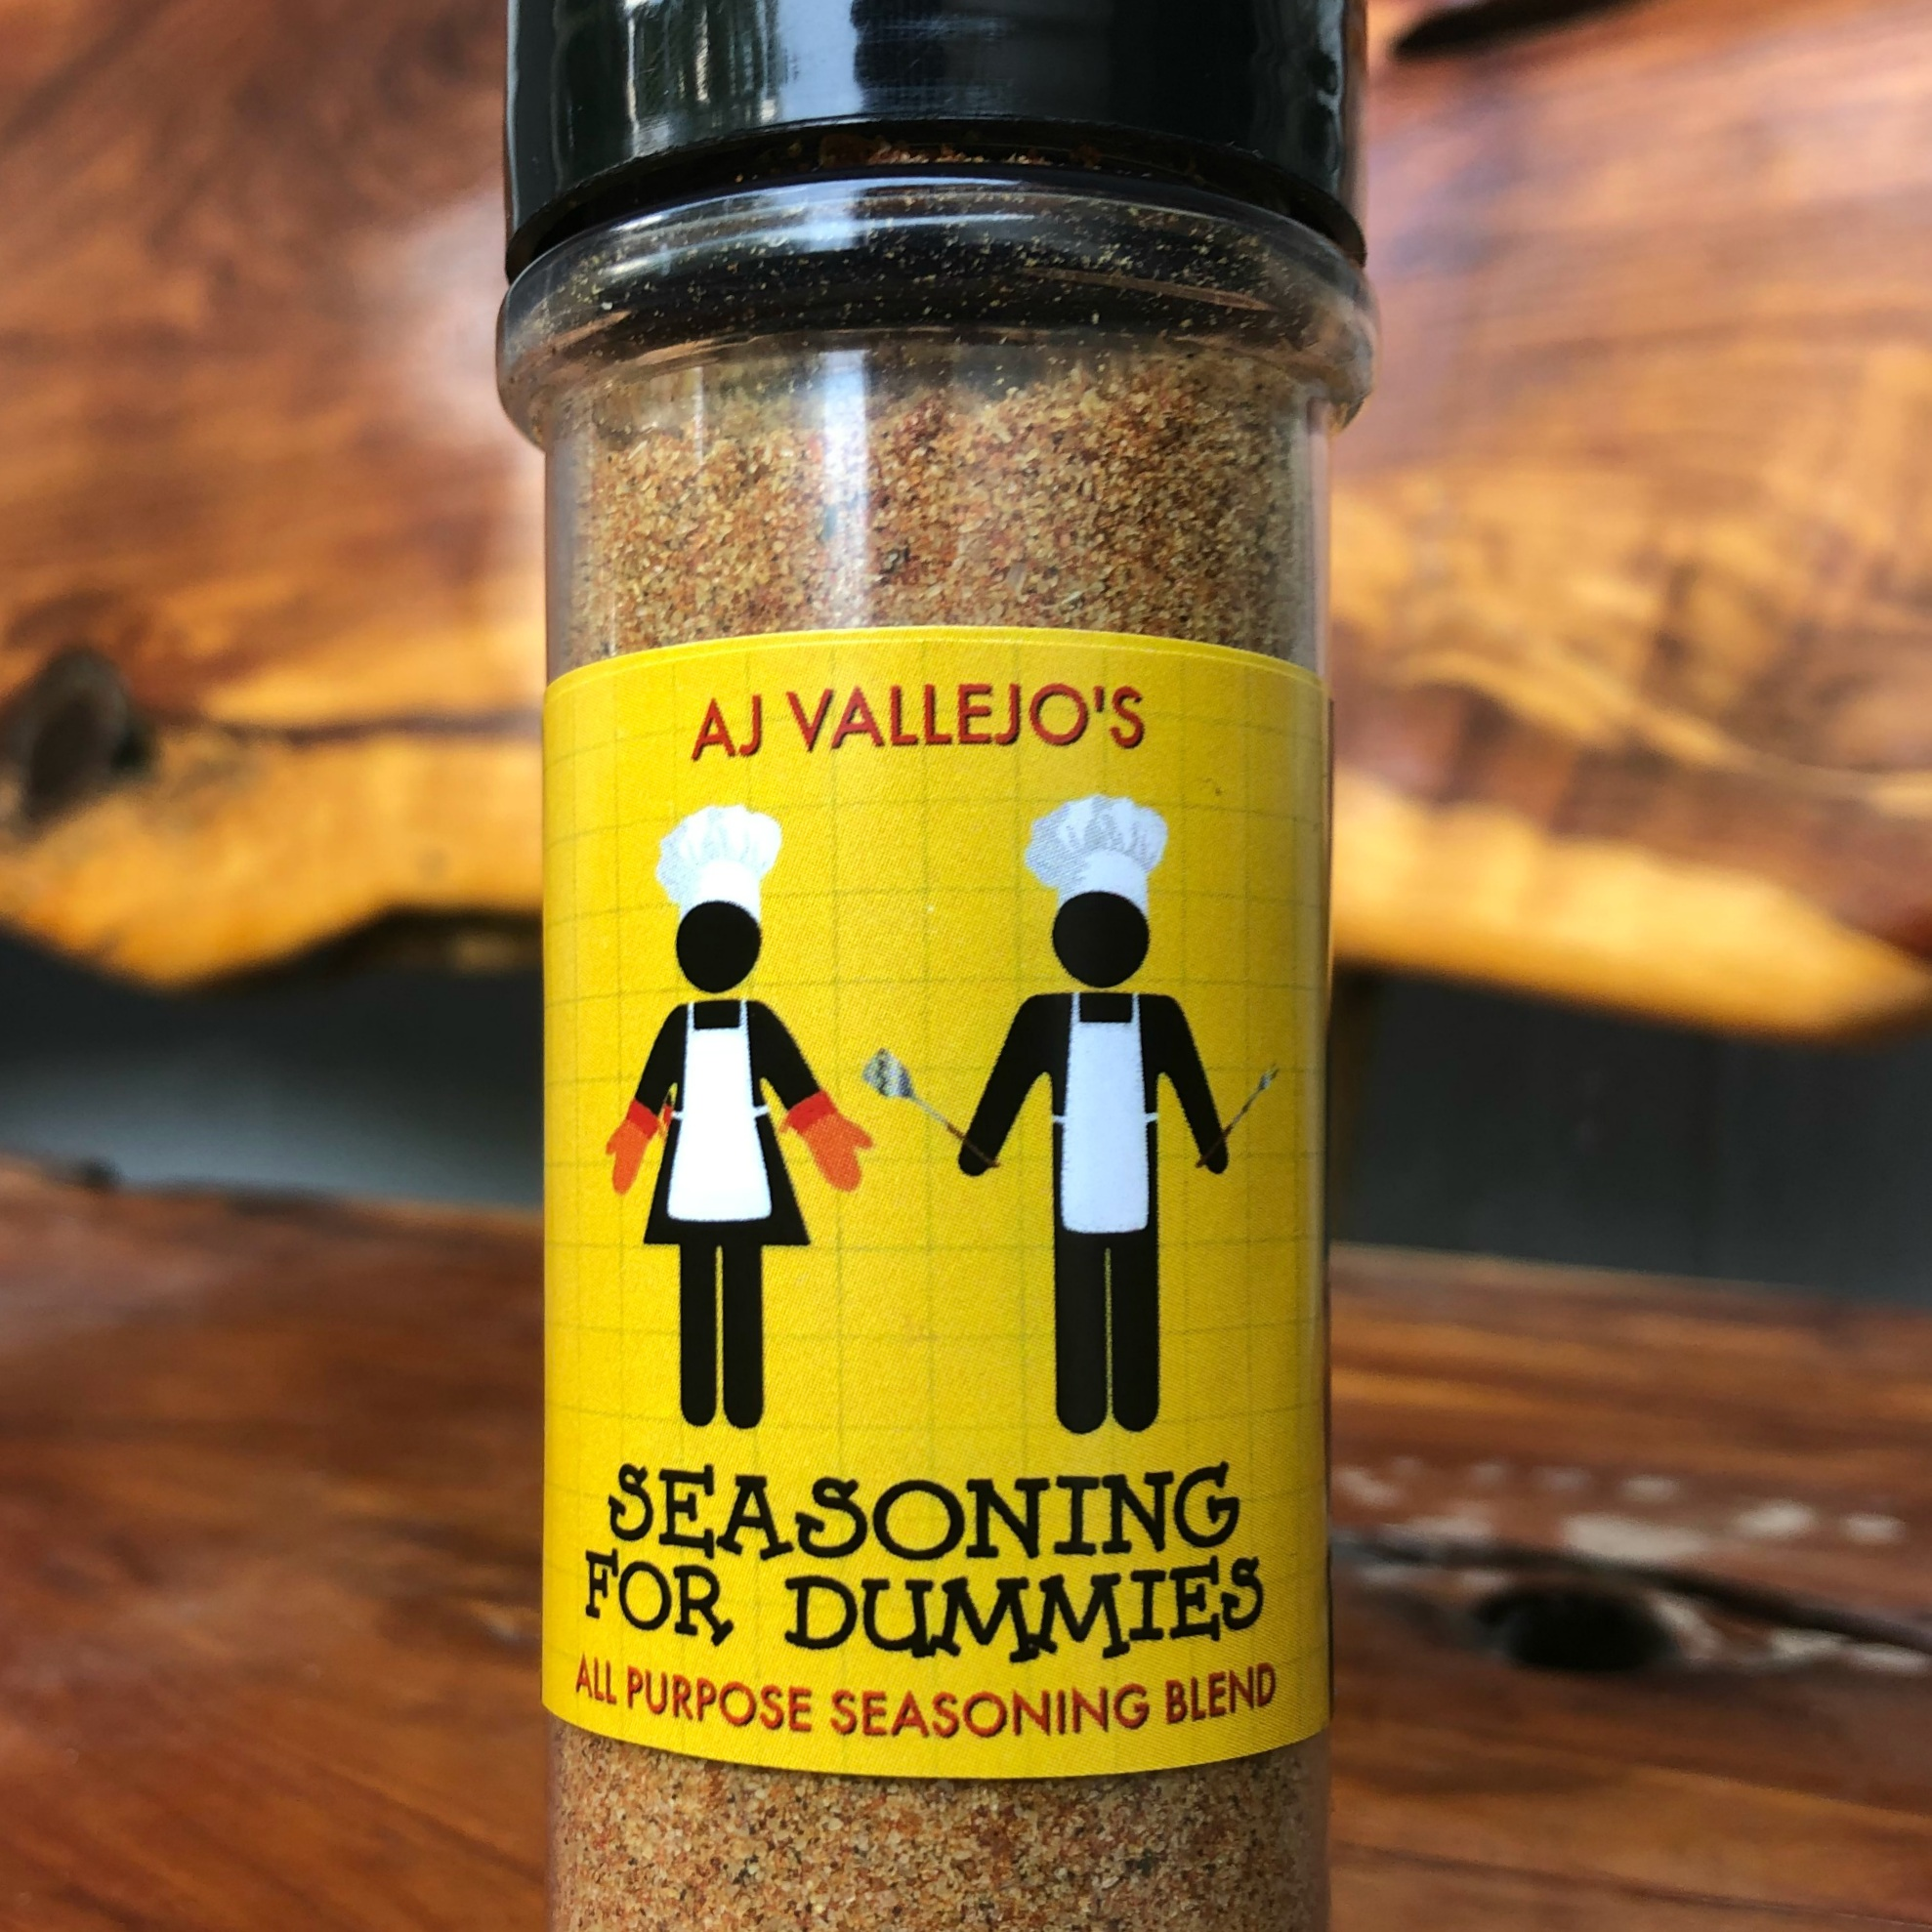 Seasoning+4+Dummies.jpg